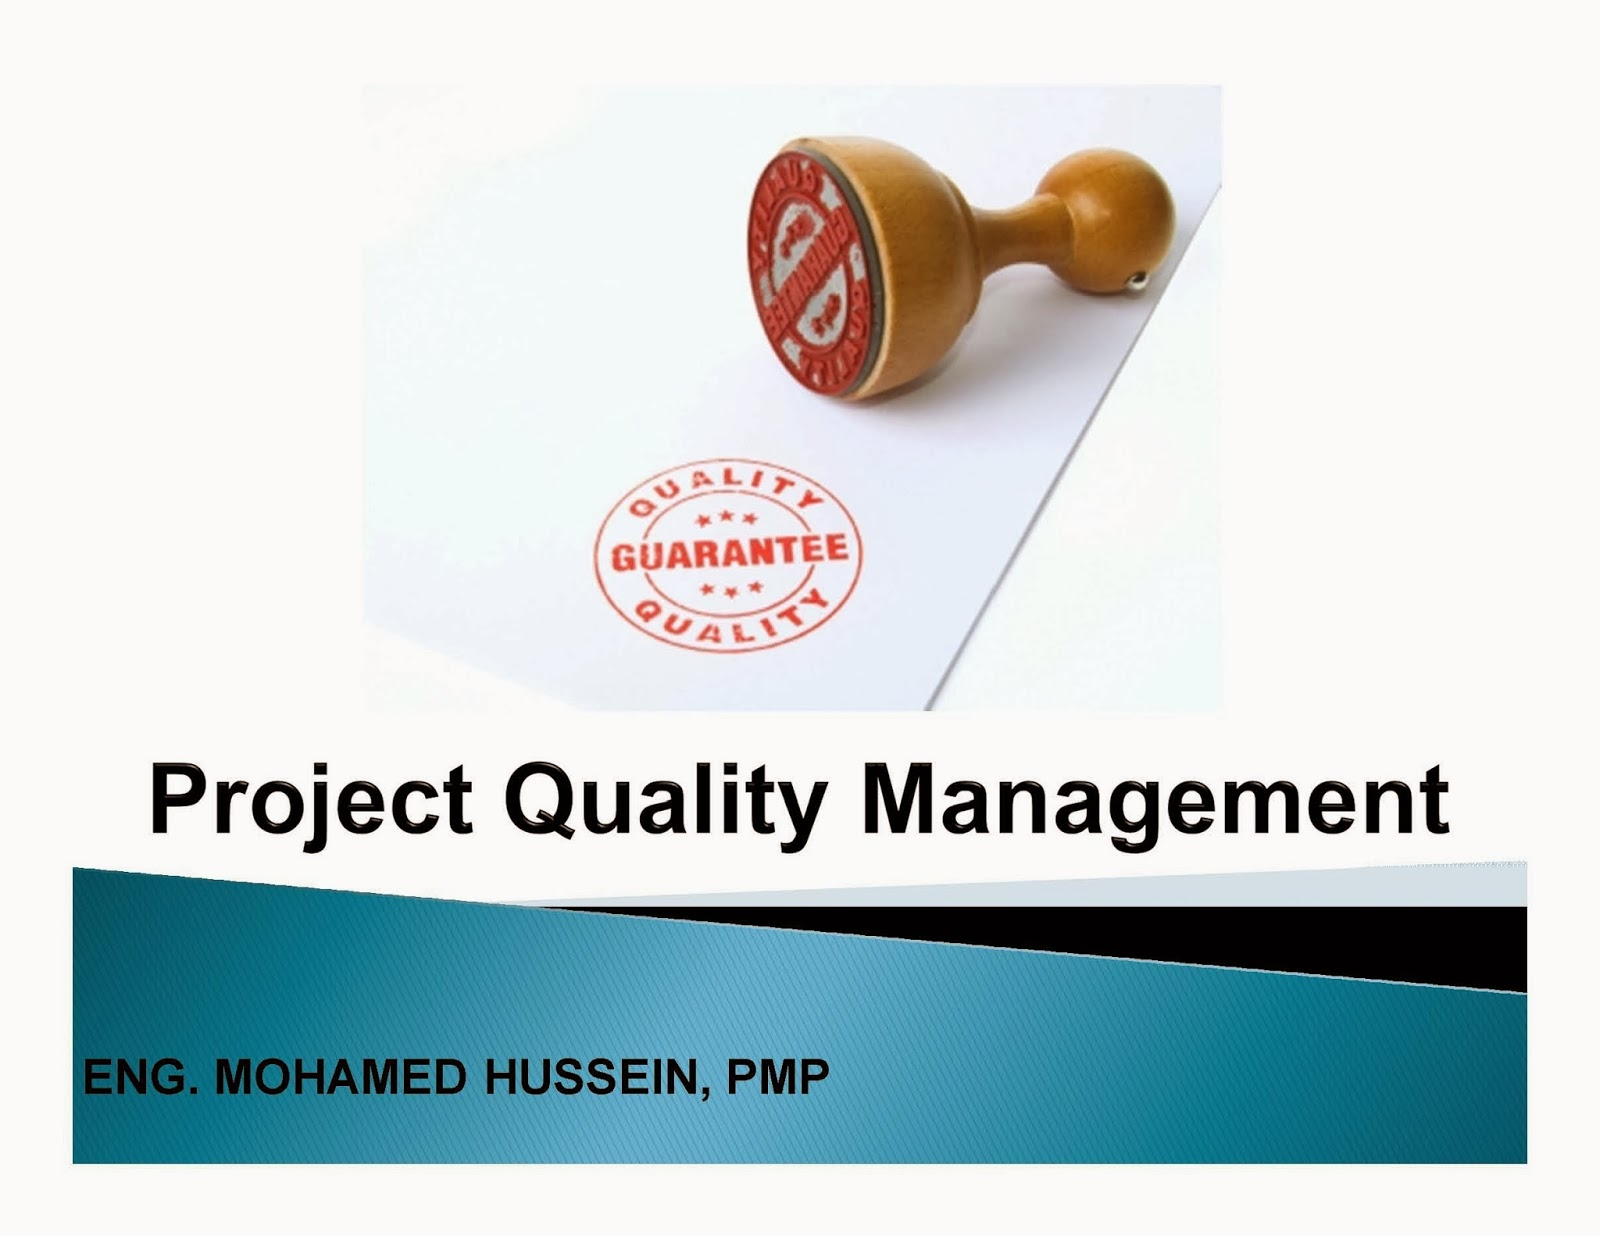 quality management project Cdc unified process practices guide project quality management up version: 11/30/06 page 1 of 5 document purpose the purpose of this document is to provide guidance on the practice of quality management and to.